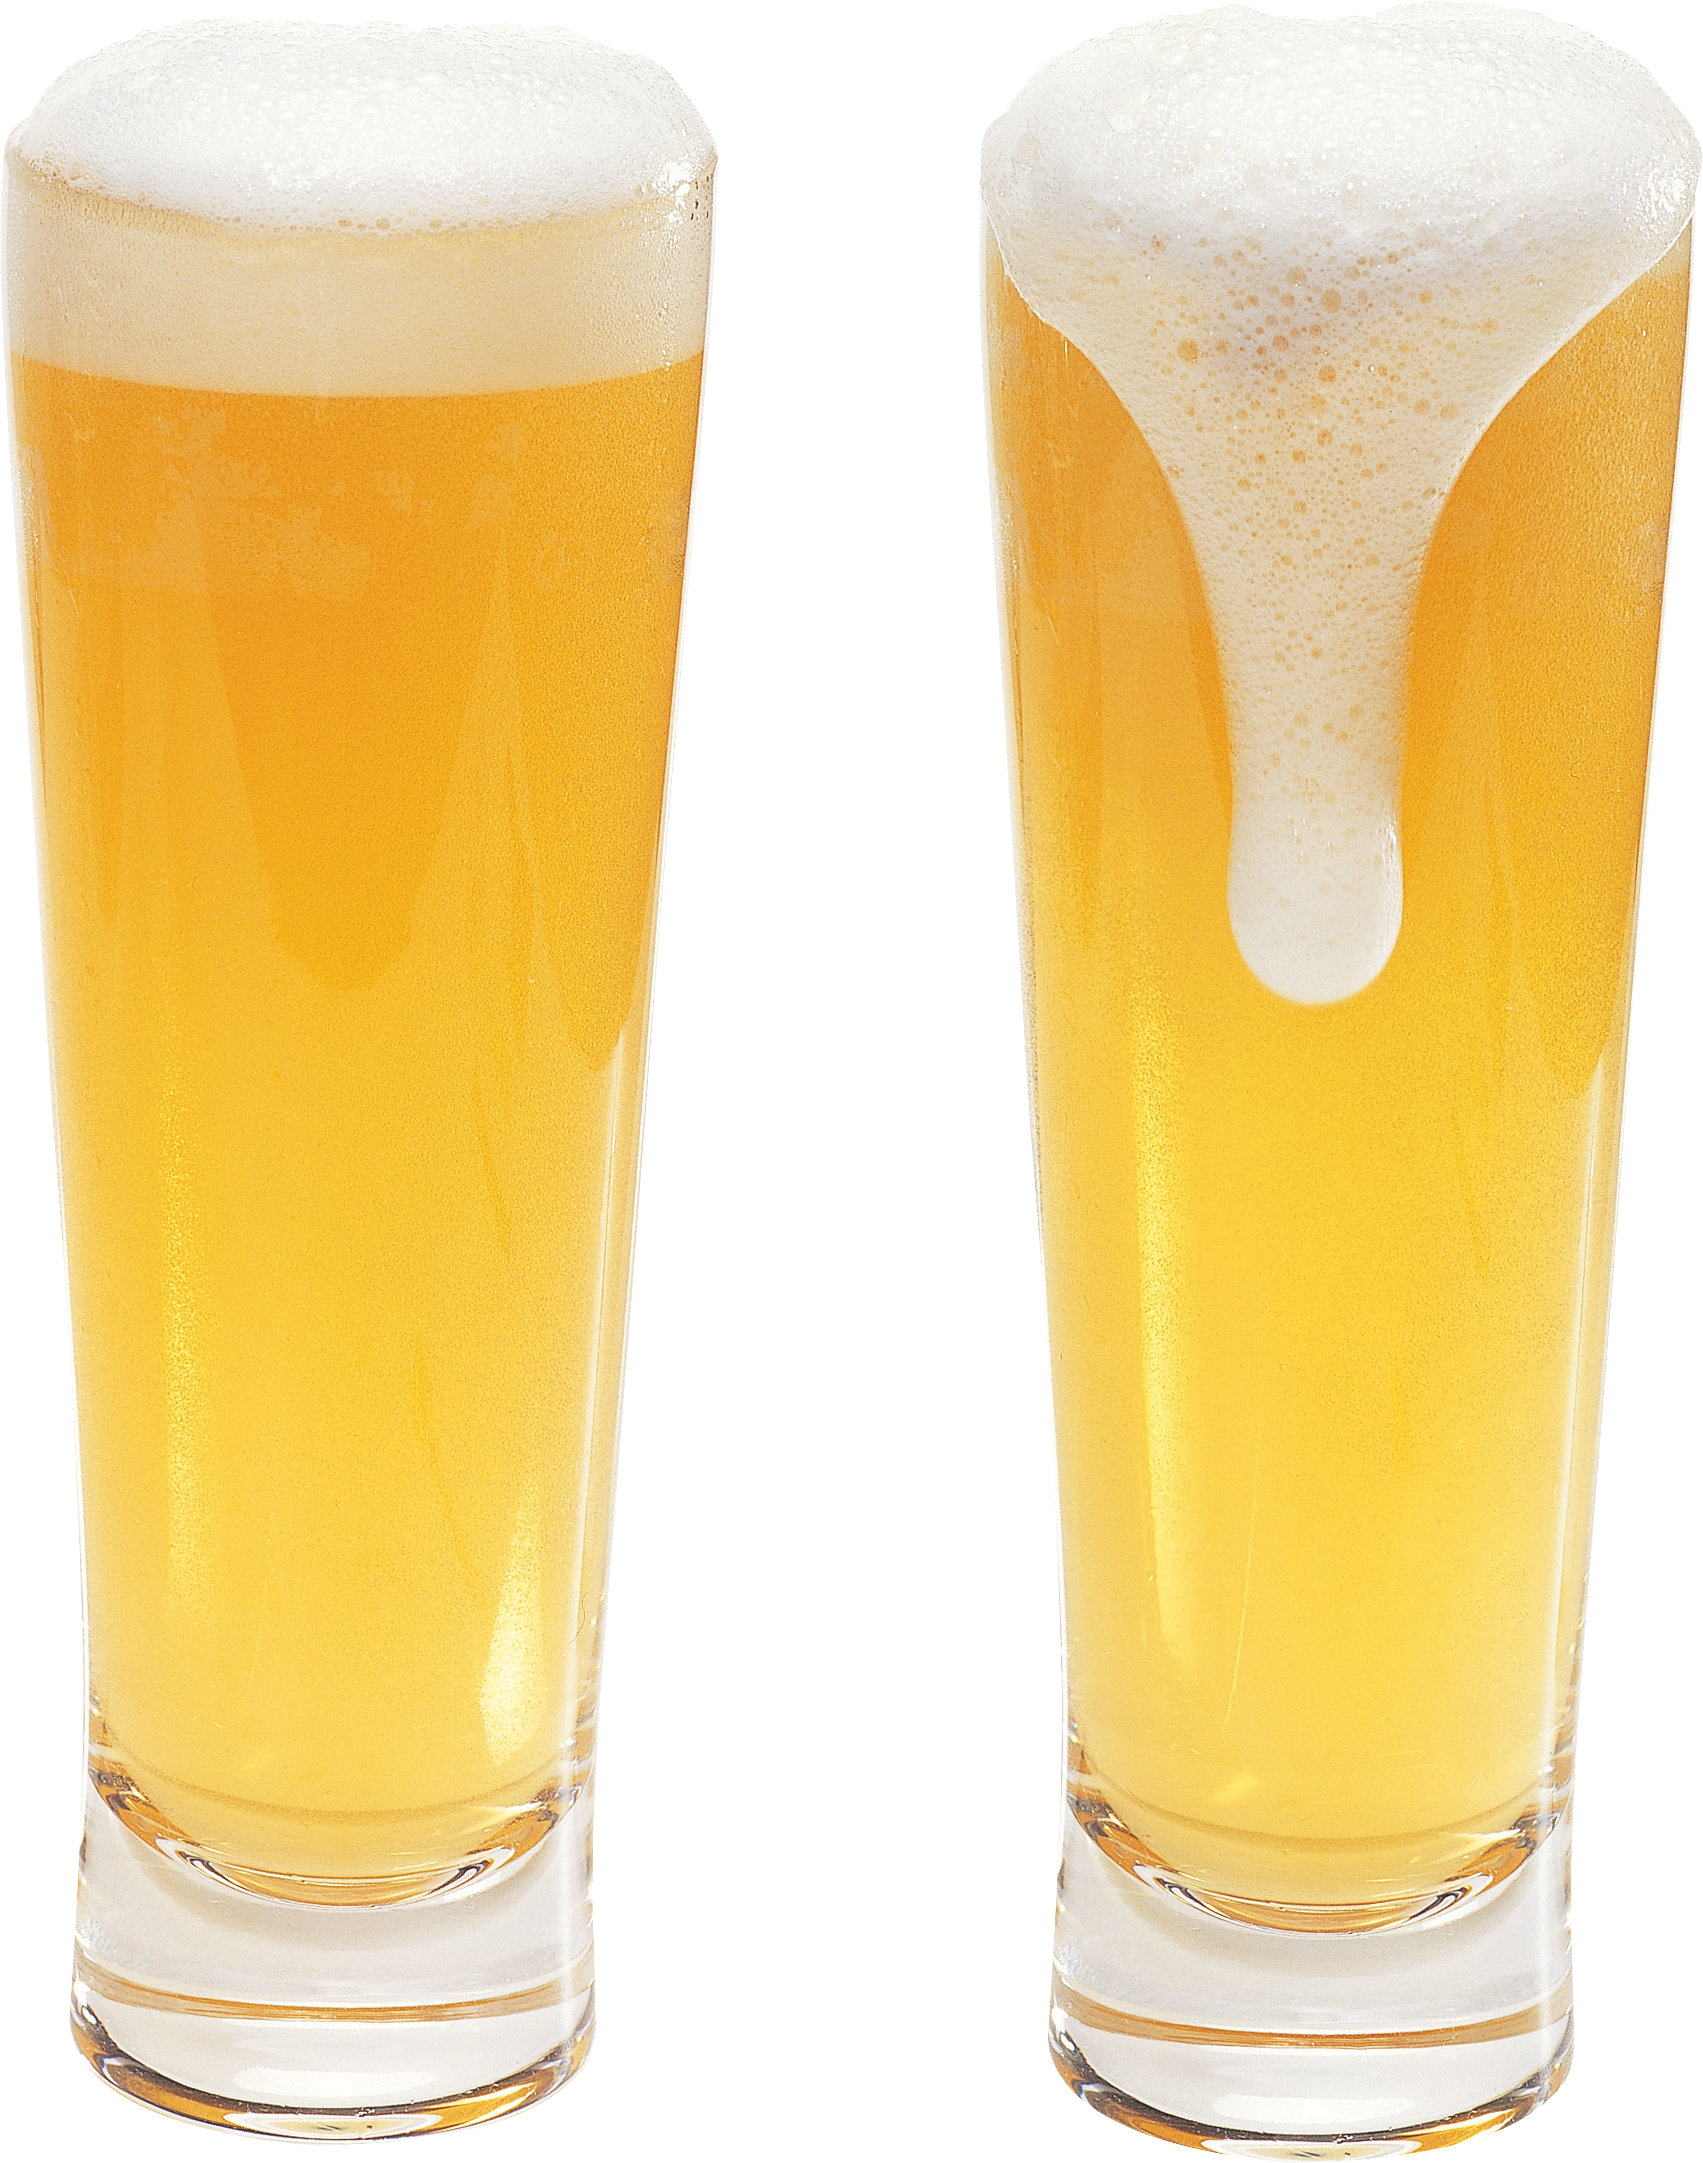 Glasses clipart pint glass. Beer png images free